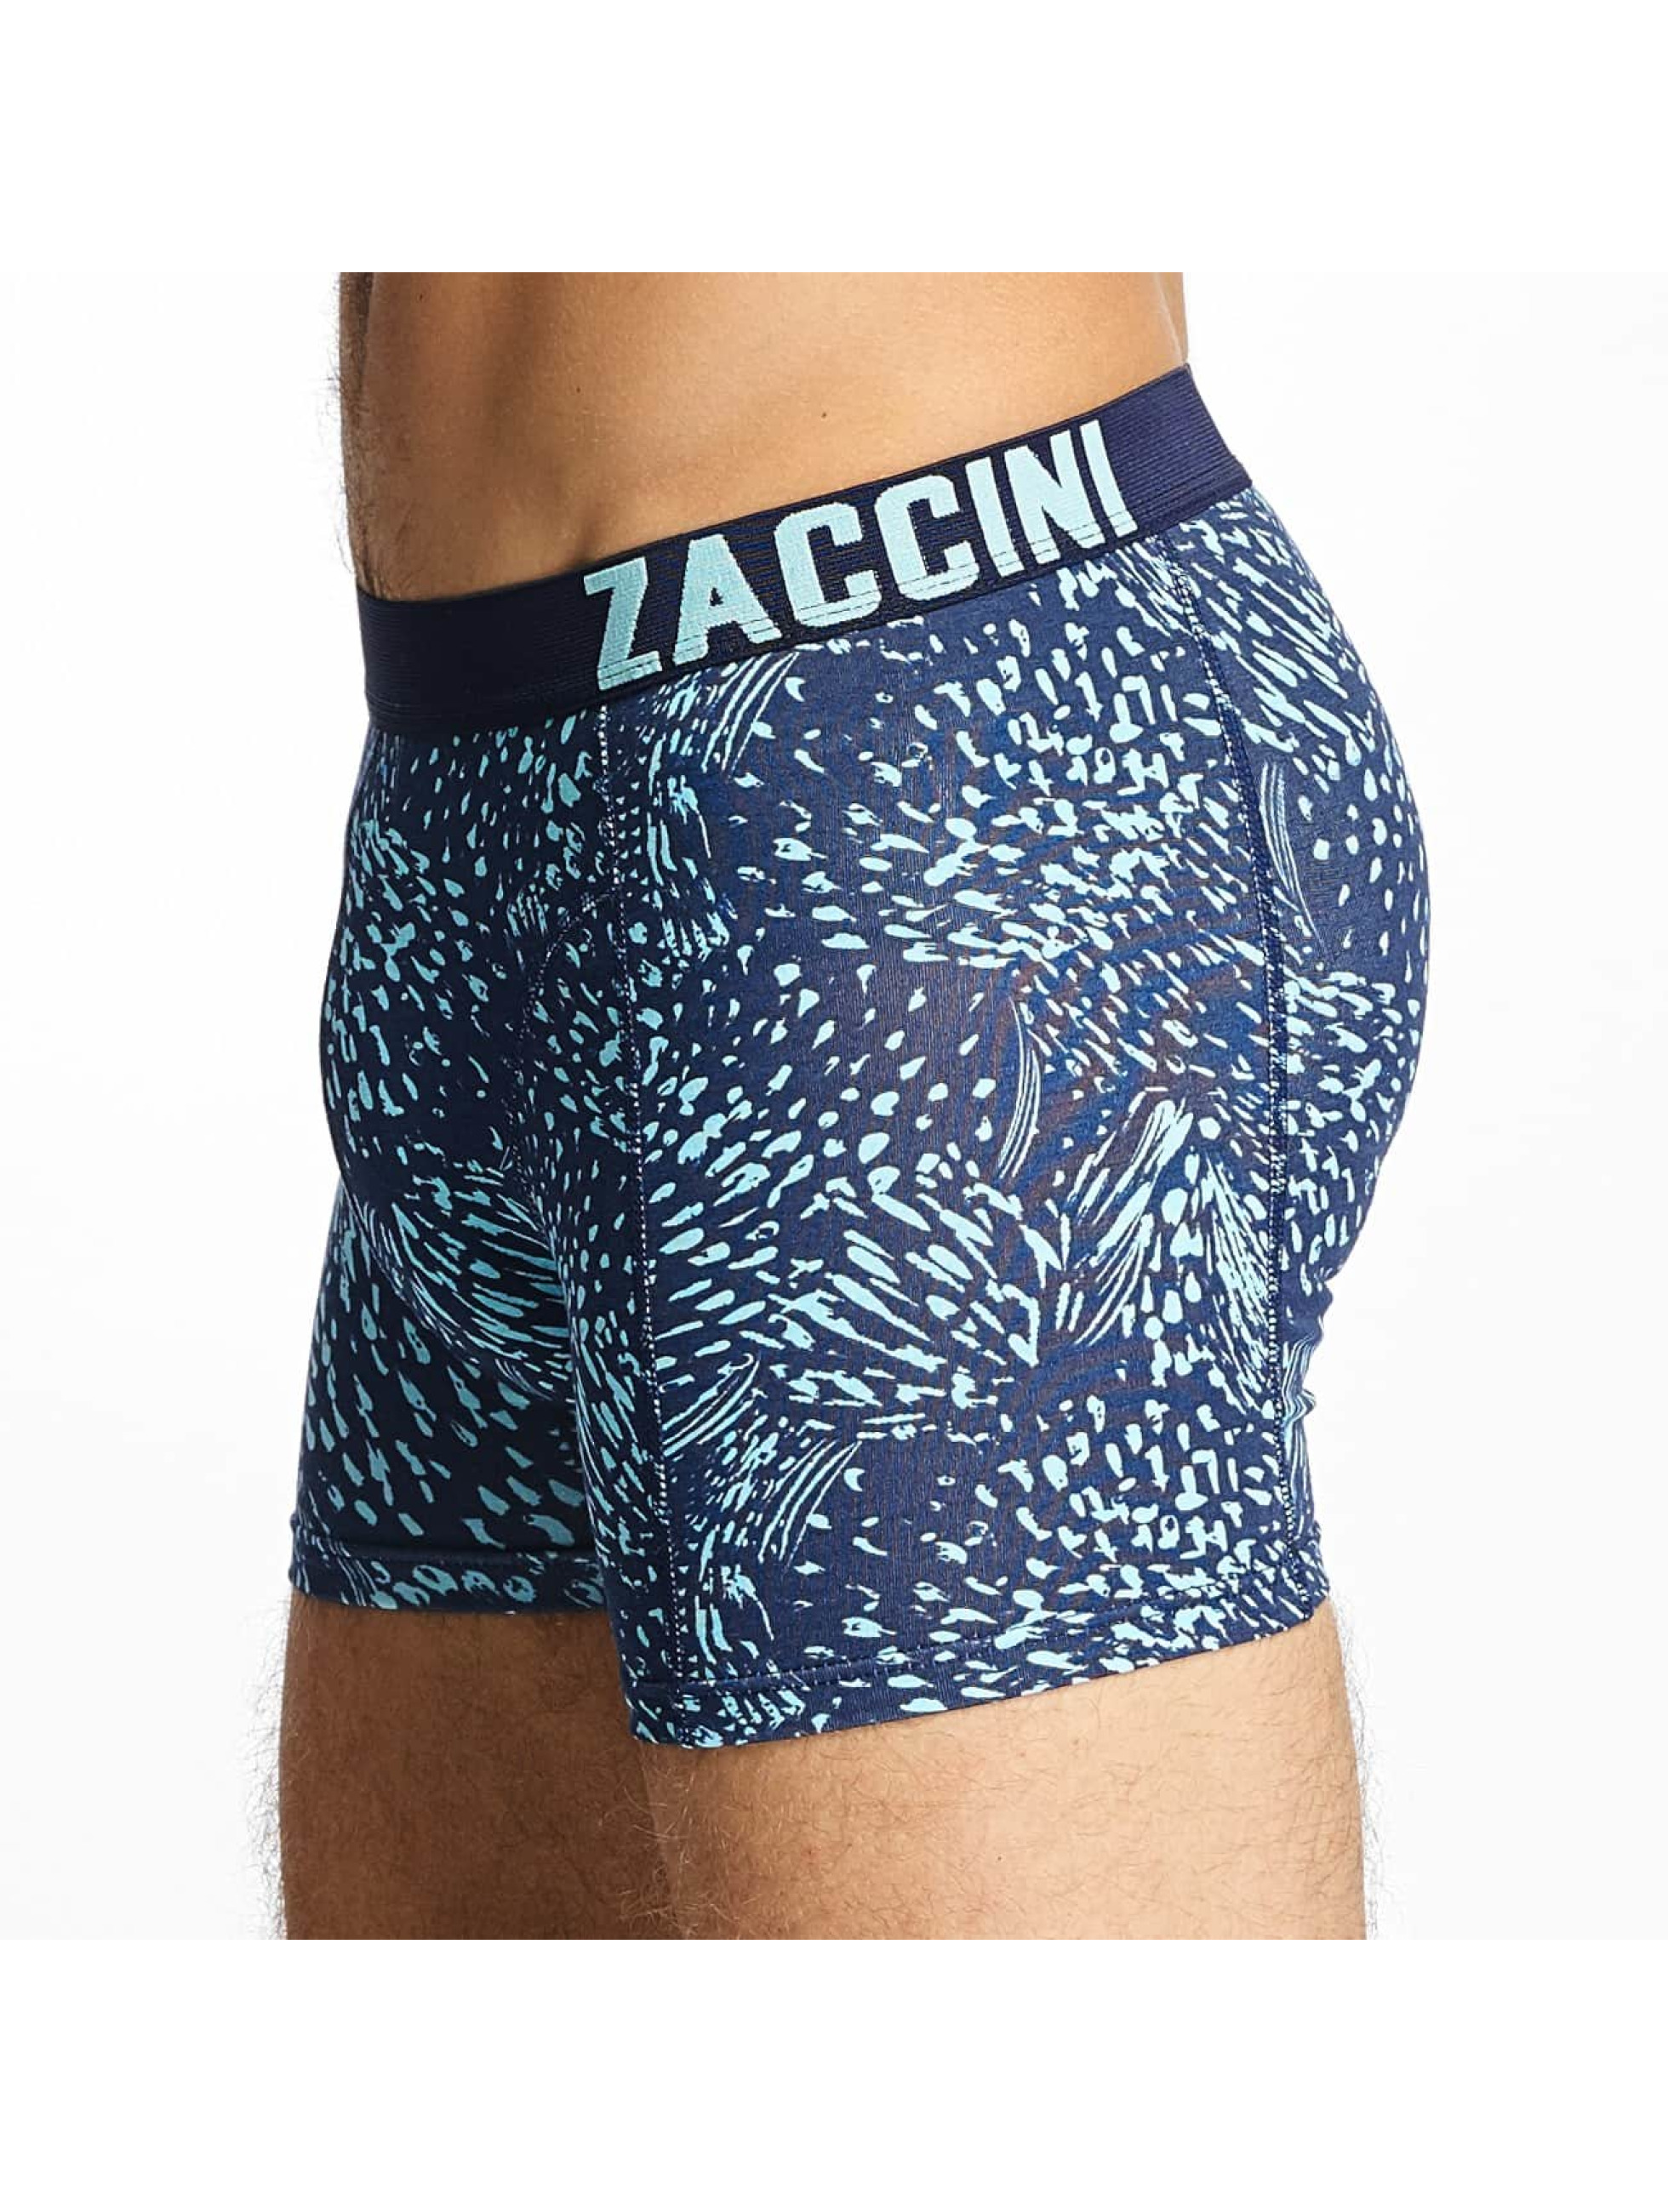 Zaccini Boxer Short Summer Spray 2-Pack blue